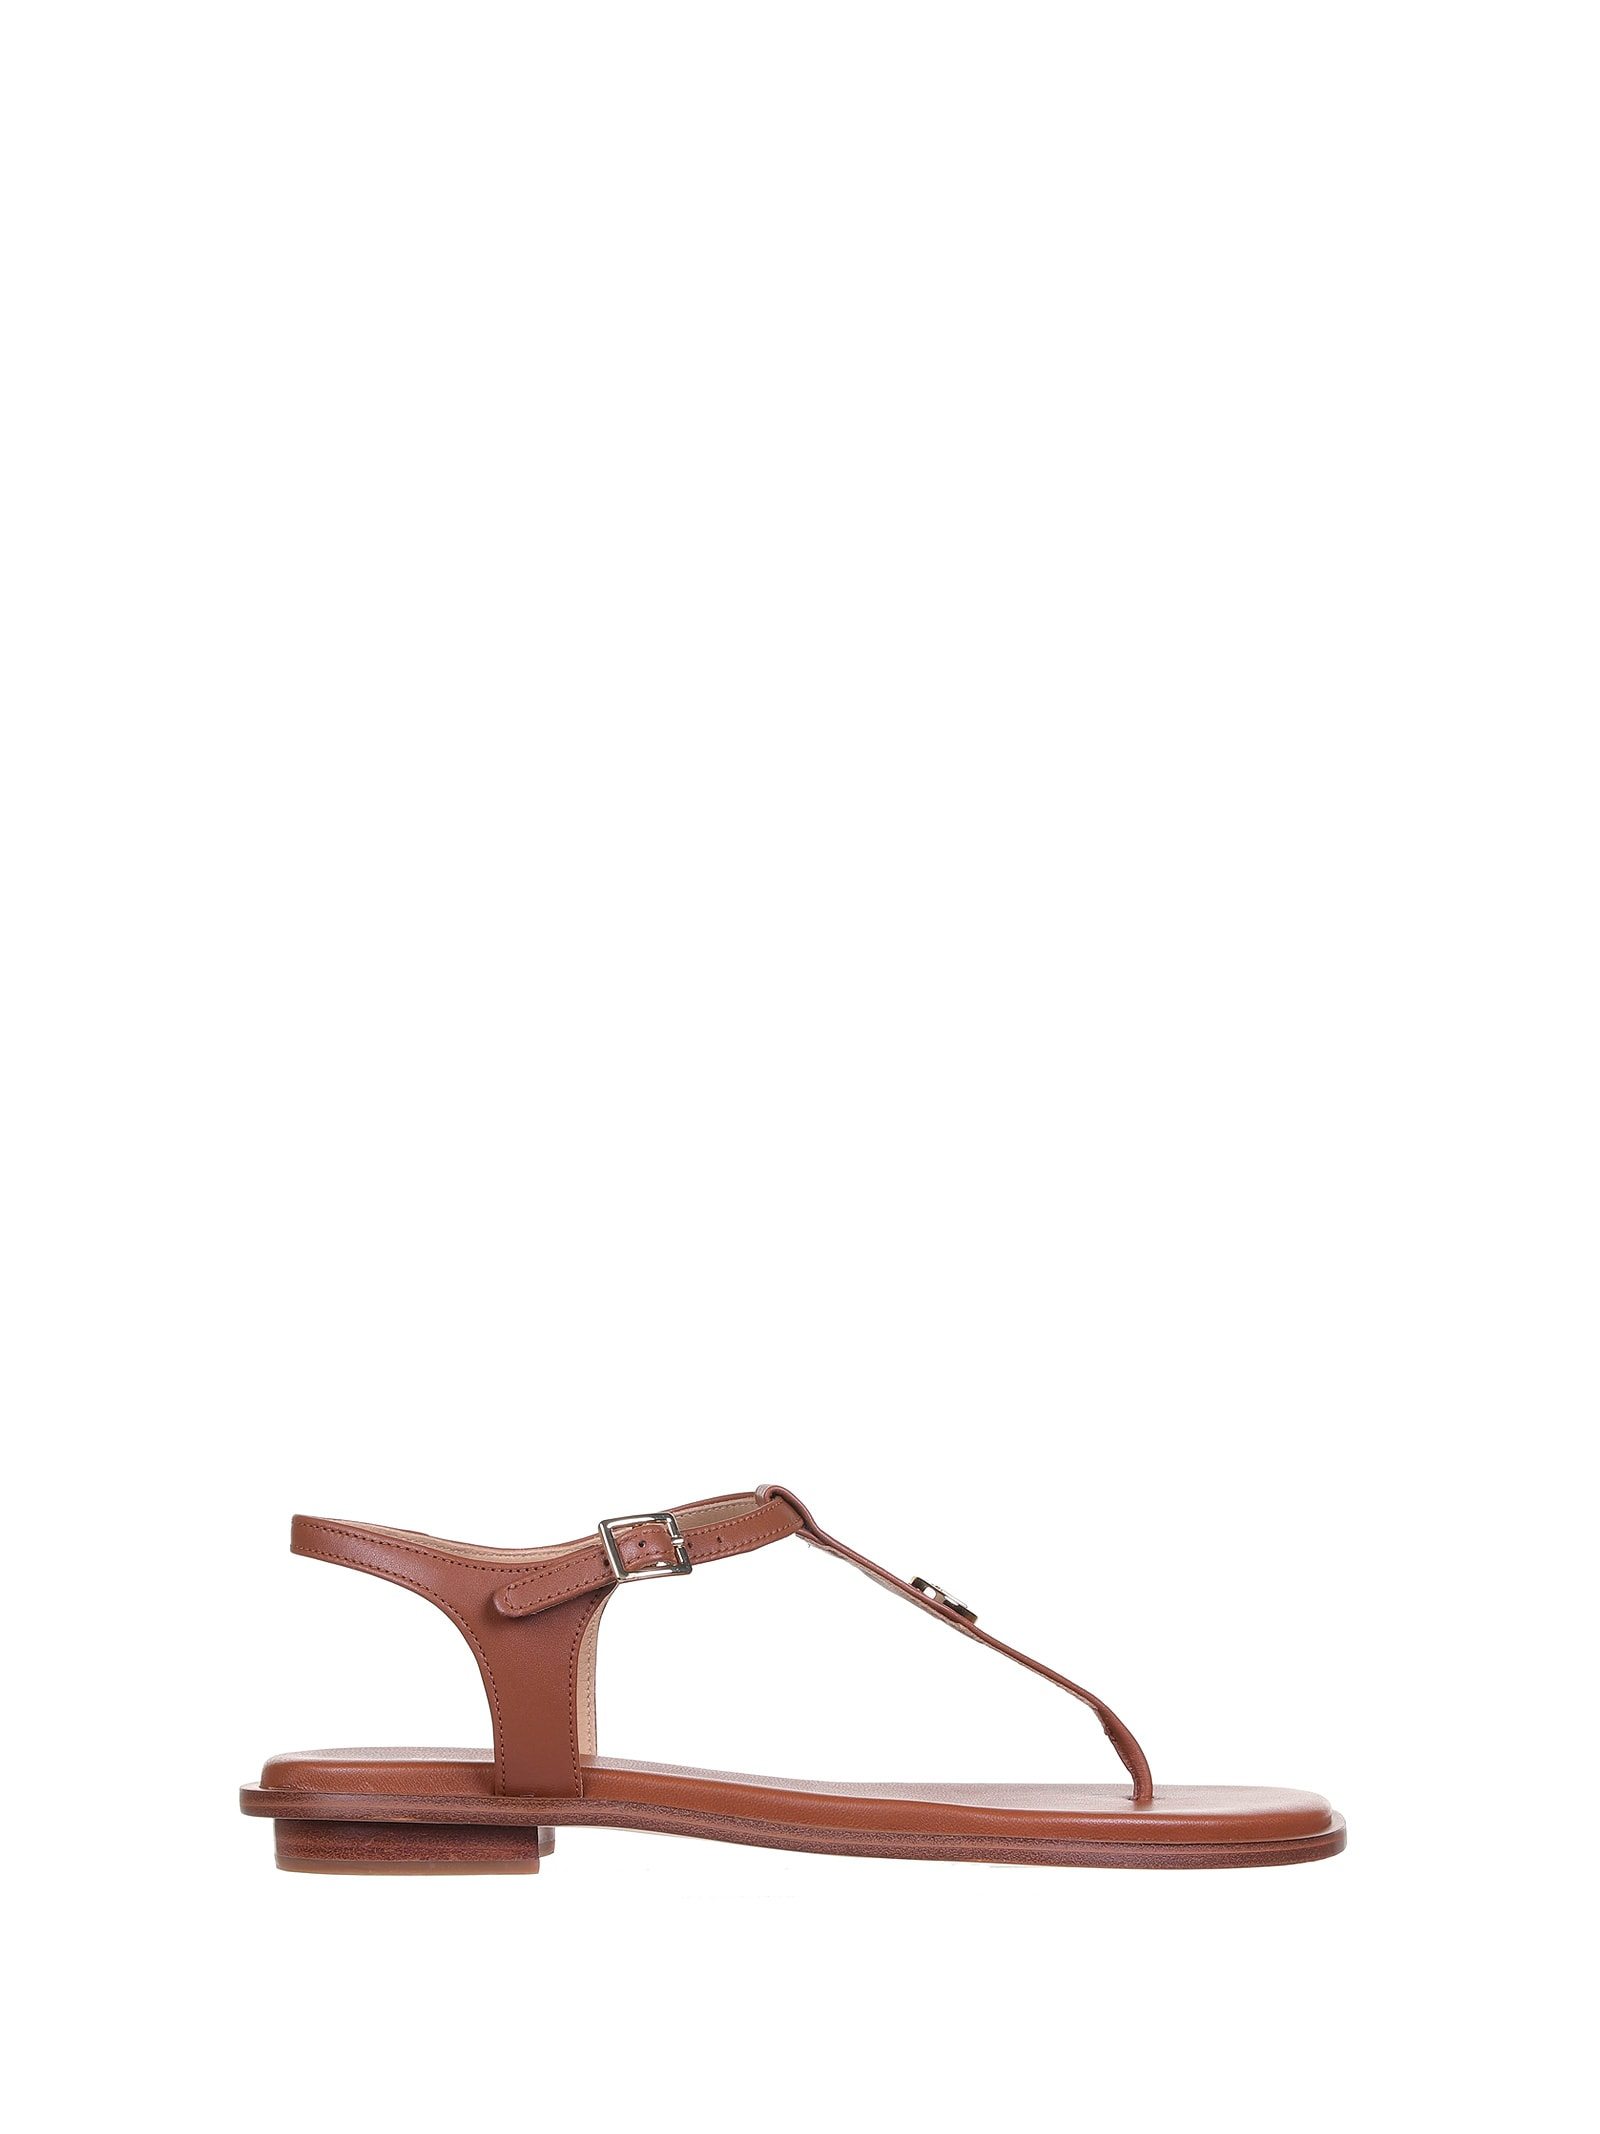 MICHAEL Michael Kors Mallory Brown Leather Sandals